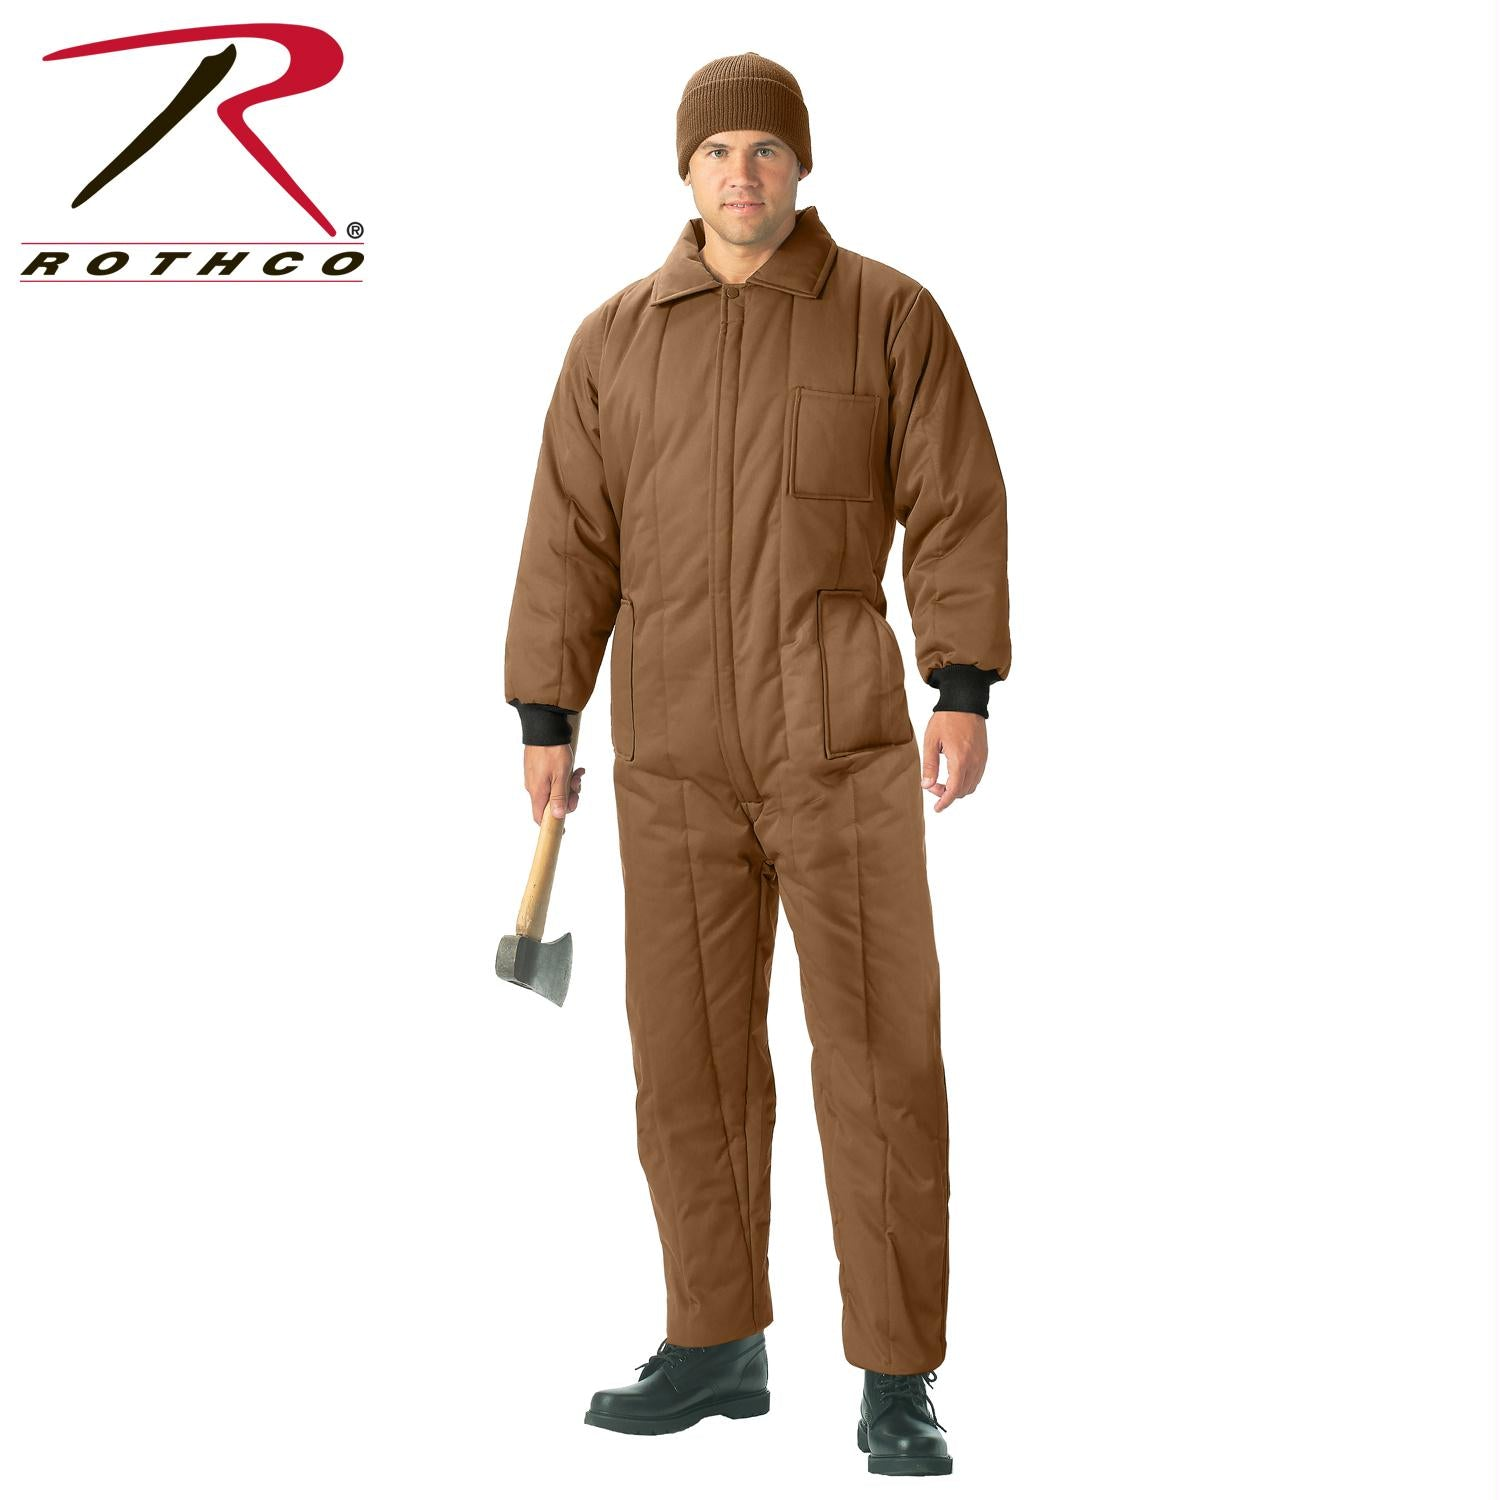 Rothco Insulated Coveralls - Coyote Brown / 2XL